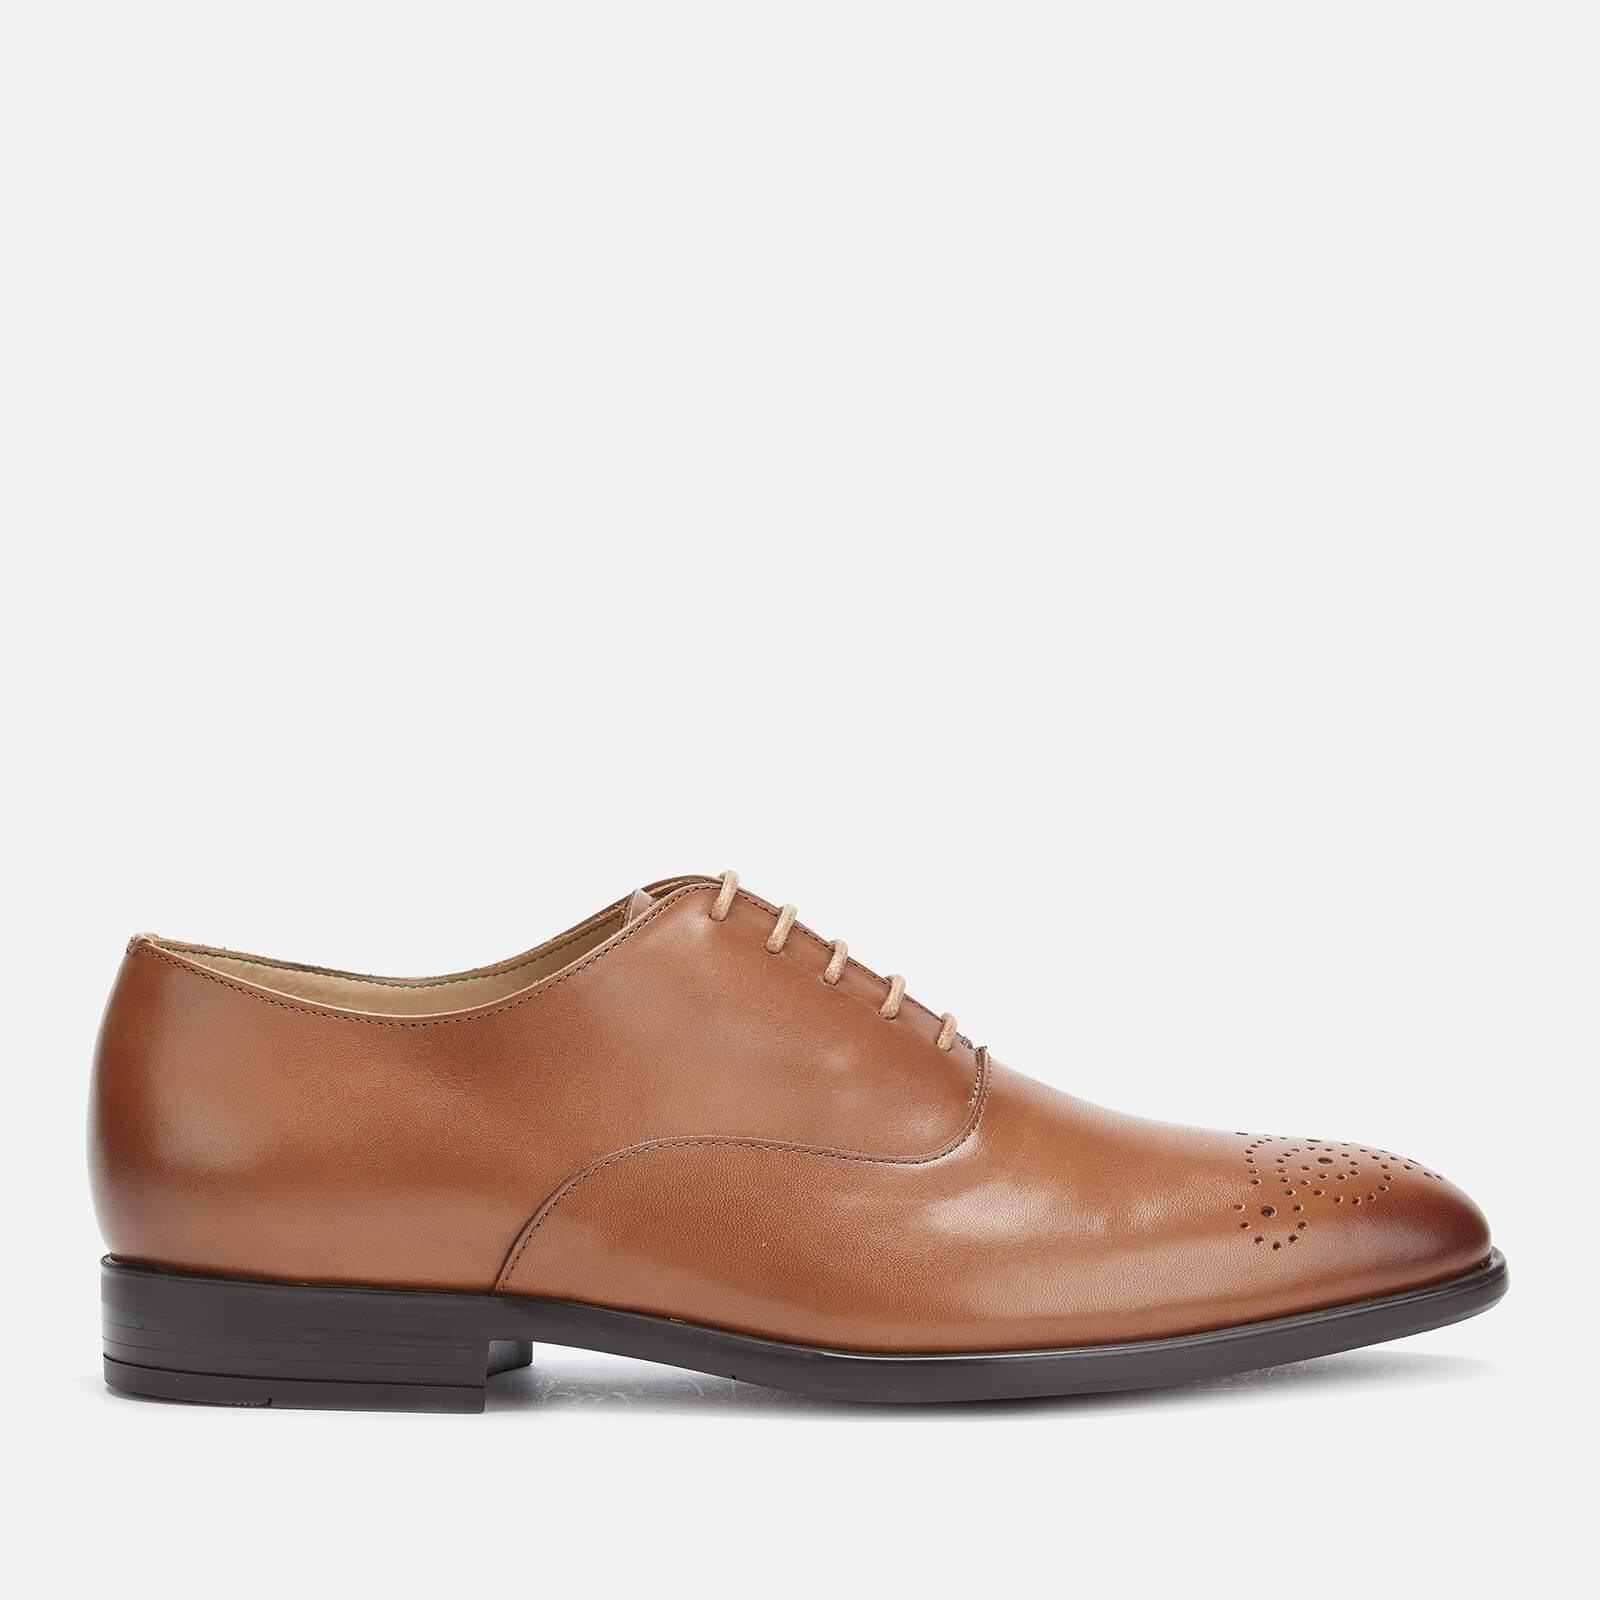 Ps Paul Smith Men's Guy Leather Oxford Shoes - Tan - Uk 7